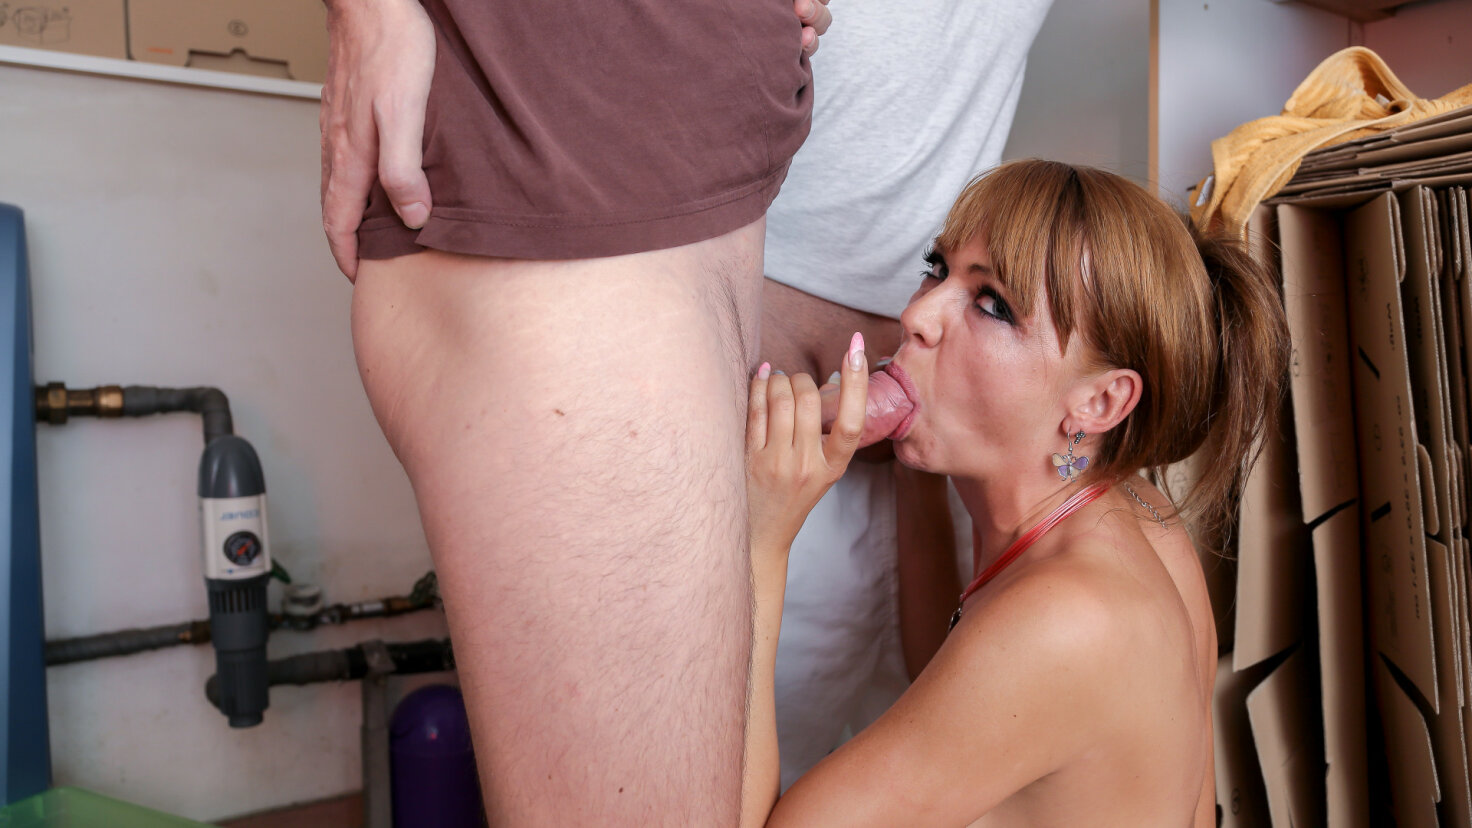 Sweet German mature gets banged on the washing machine in hot MMF threesome